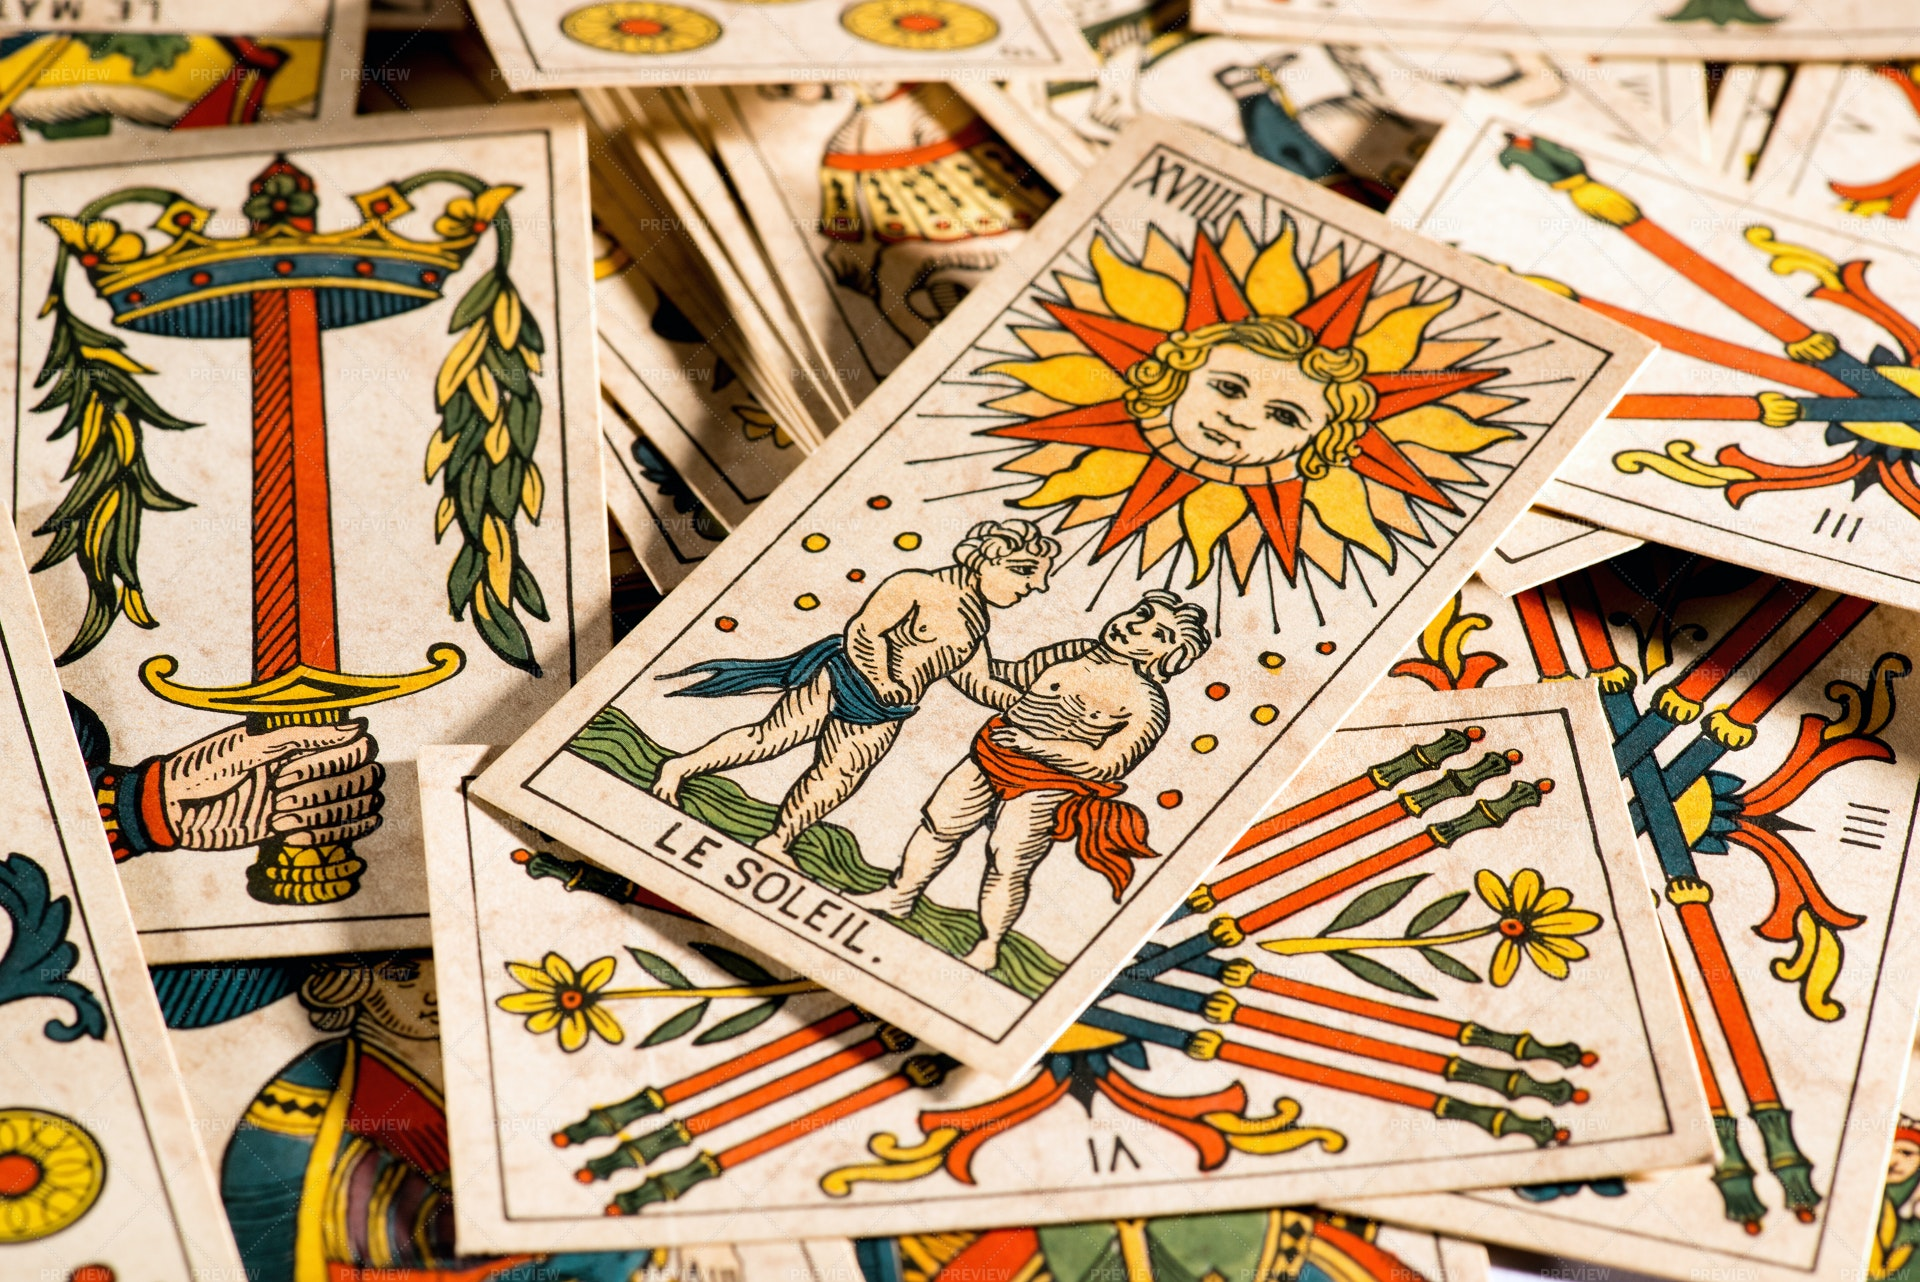 Fed Up Of Doing Tarot Card Analysis The Old Means?